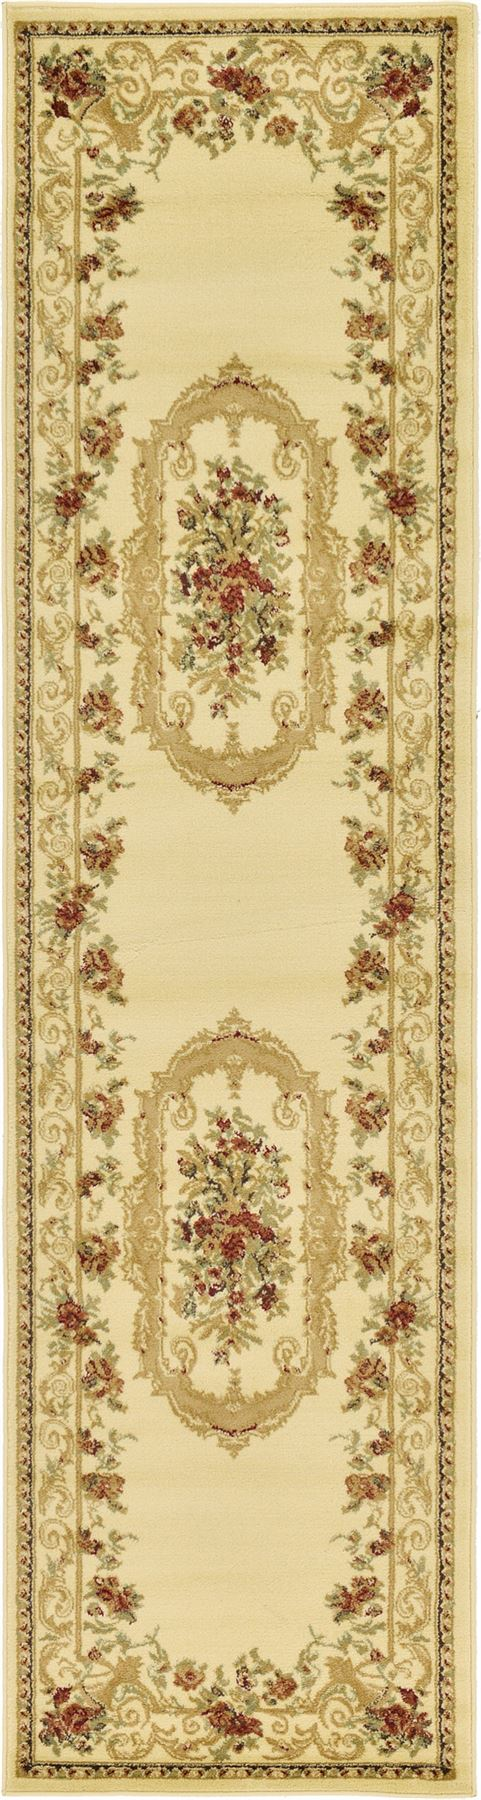 Oriental-Large-Area-Rug-Square-Traditional-Country-Round-Carpet-Medallion-Small thumbnail 22